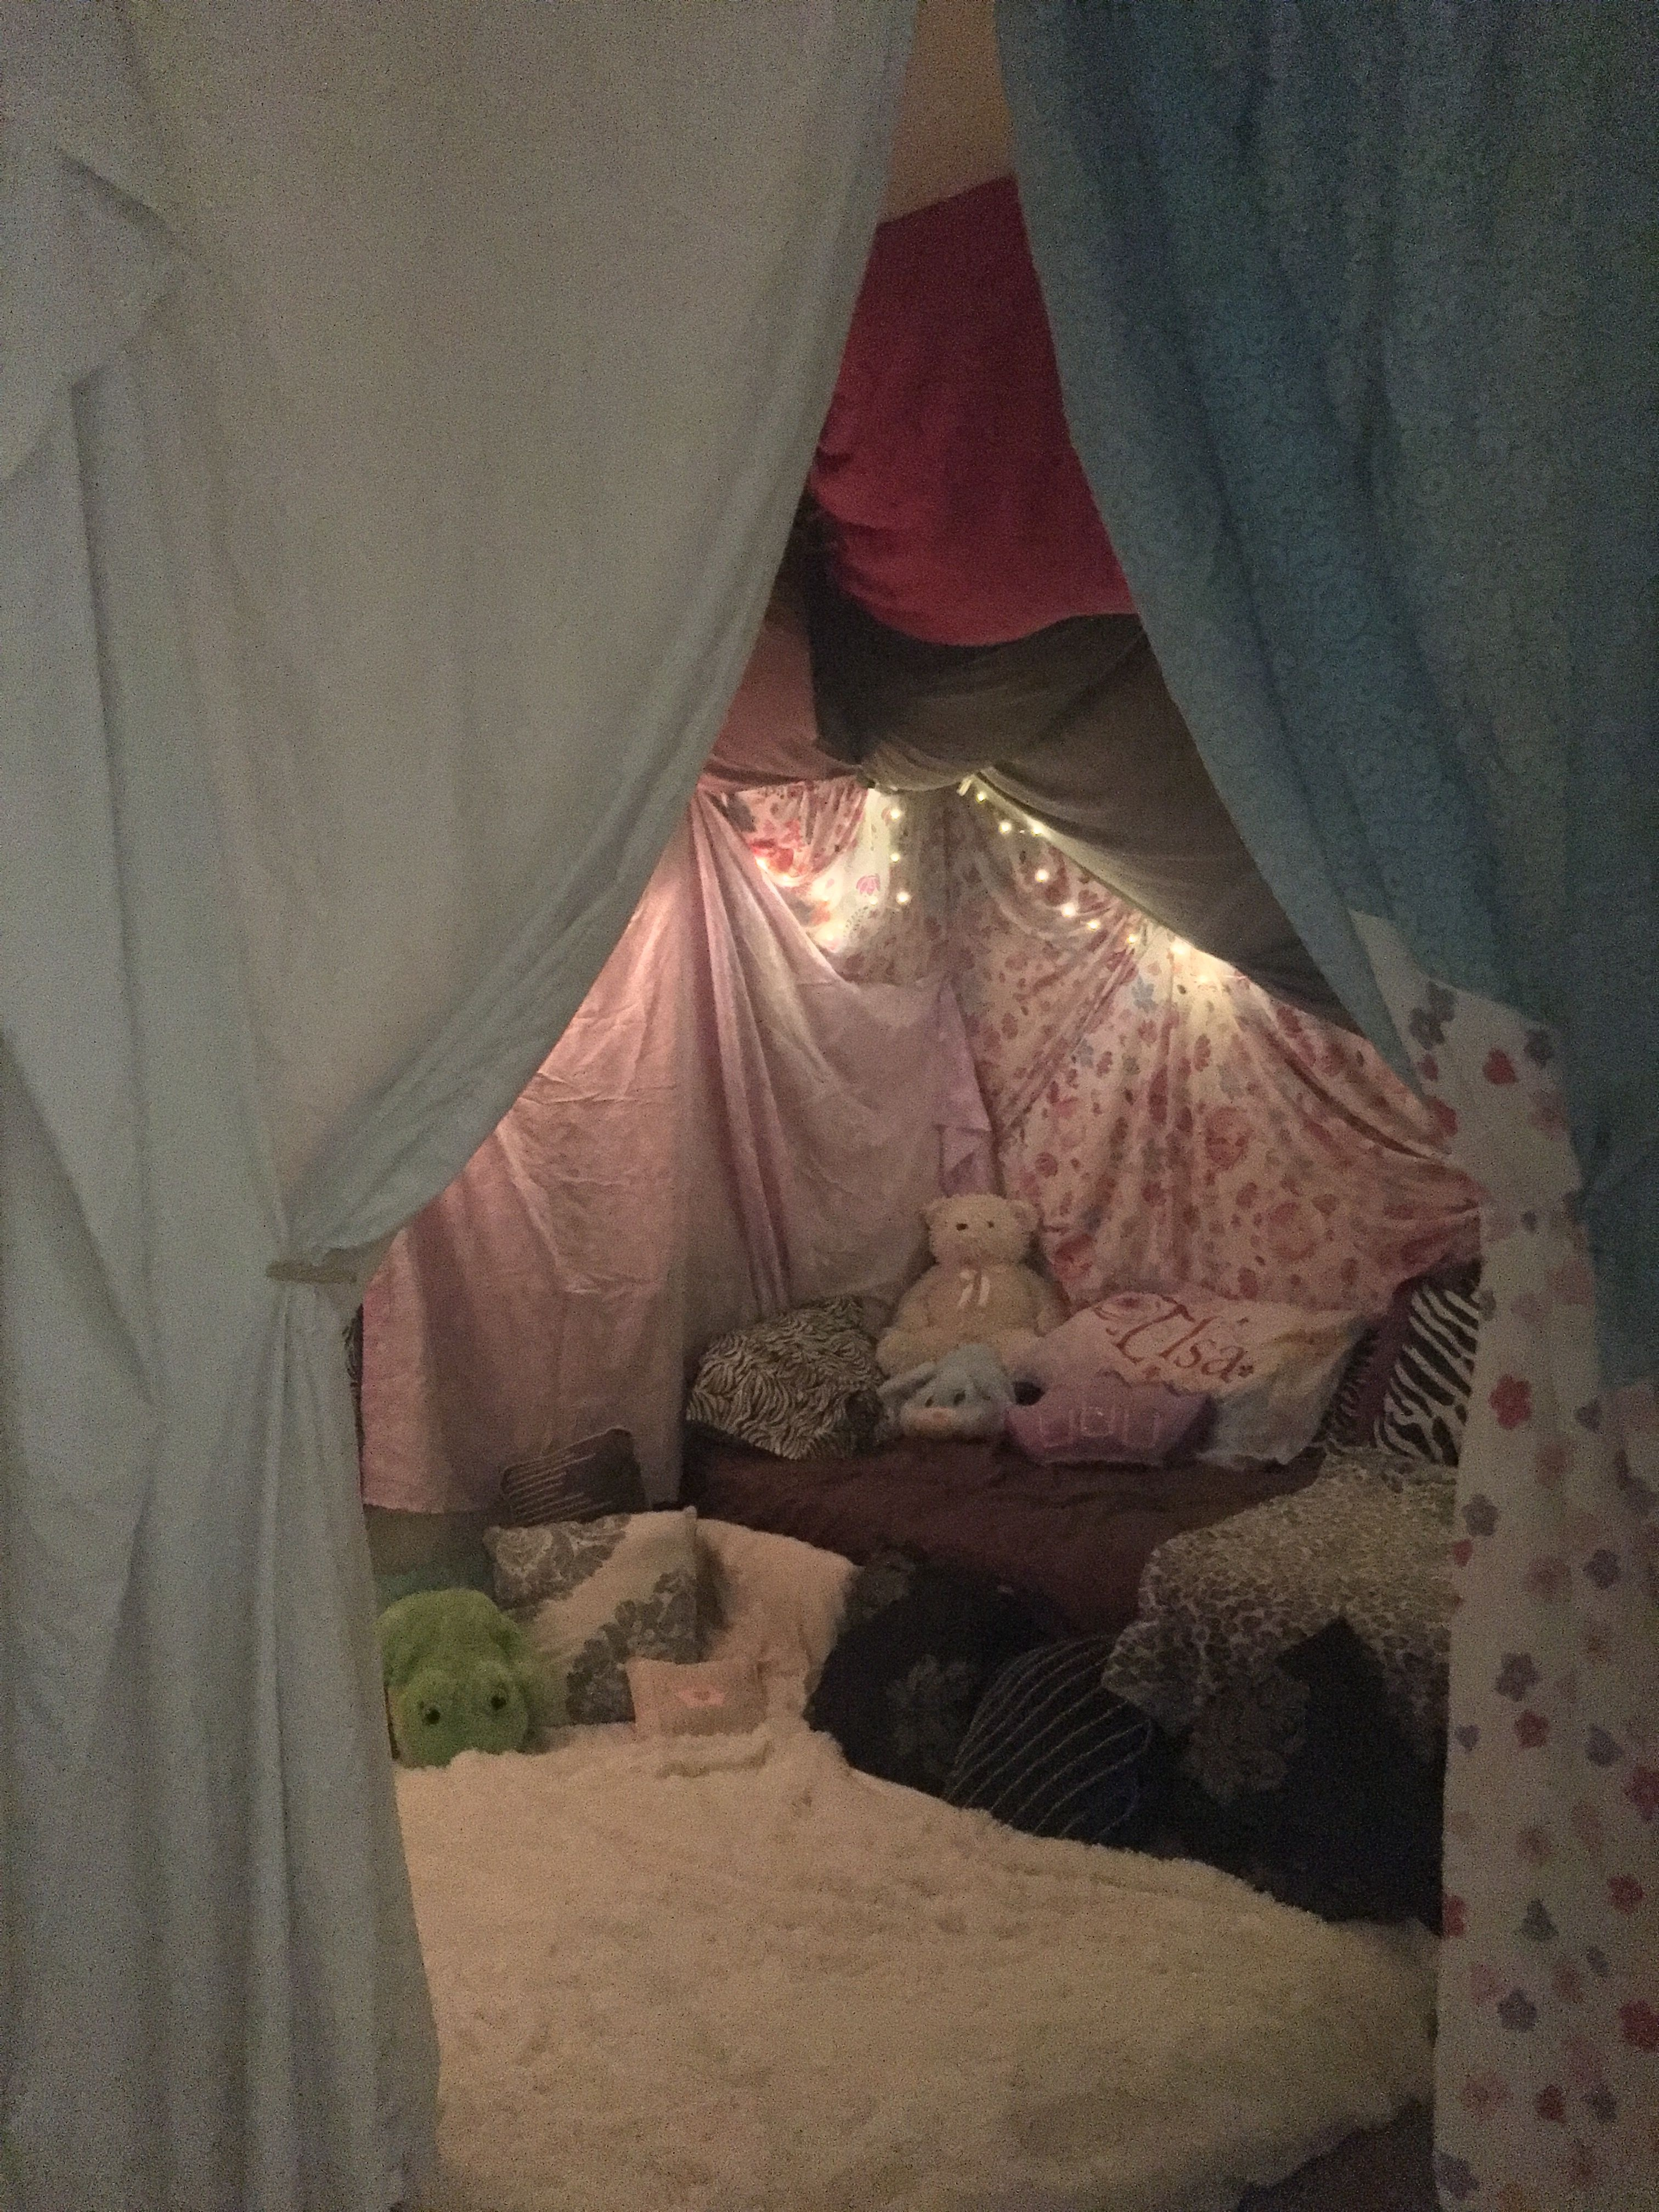 Kids huge blanket fort covers whole room Perfect for